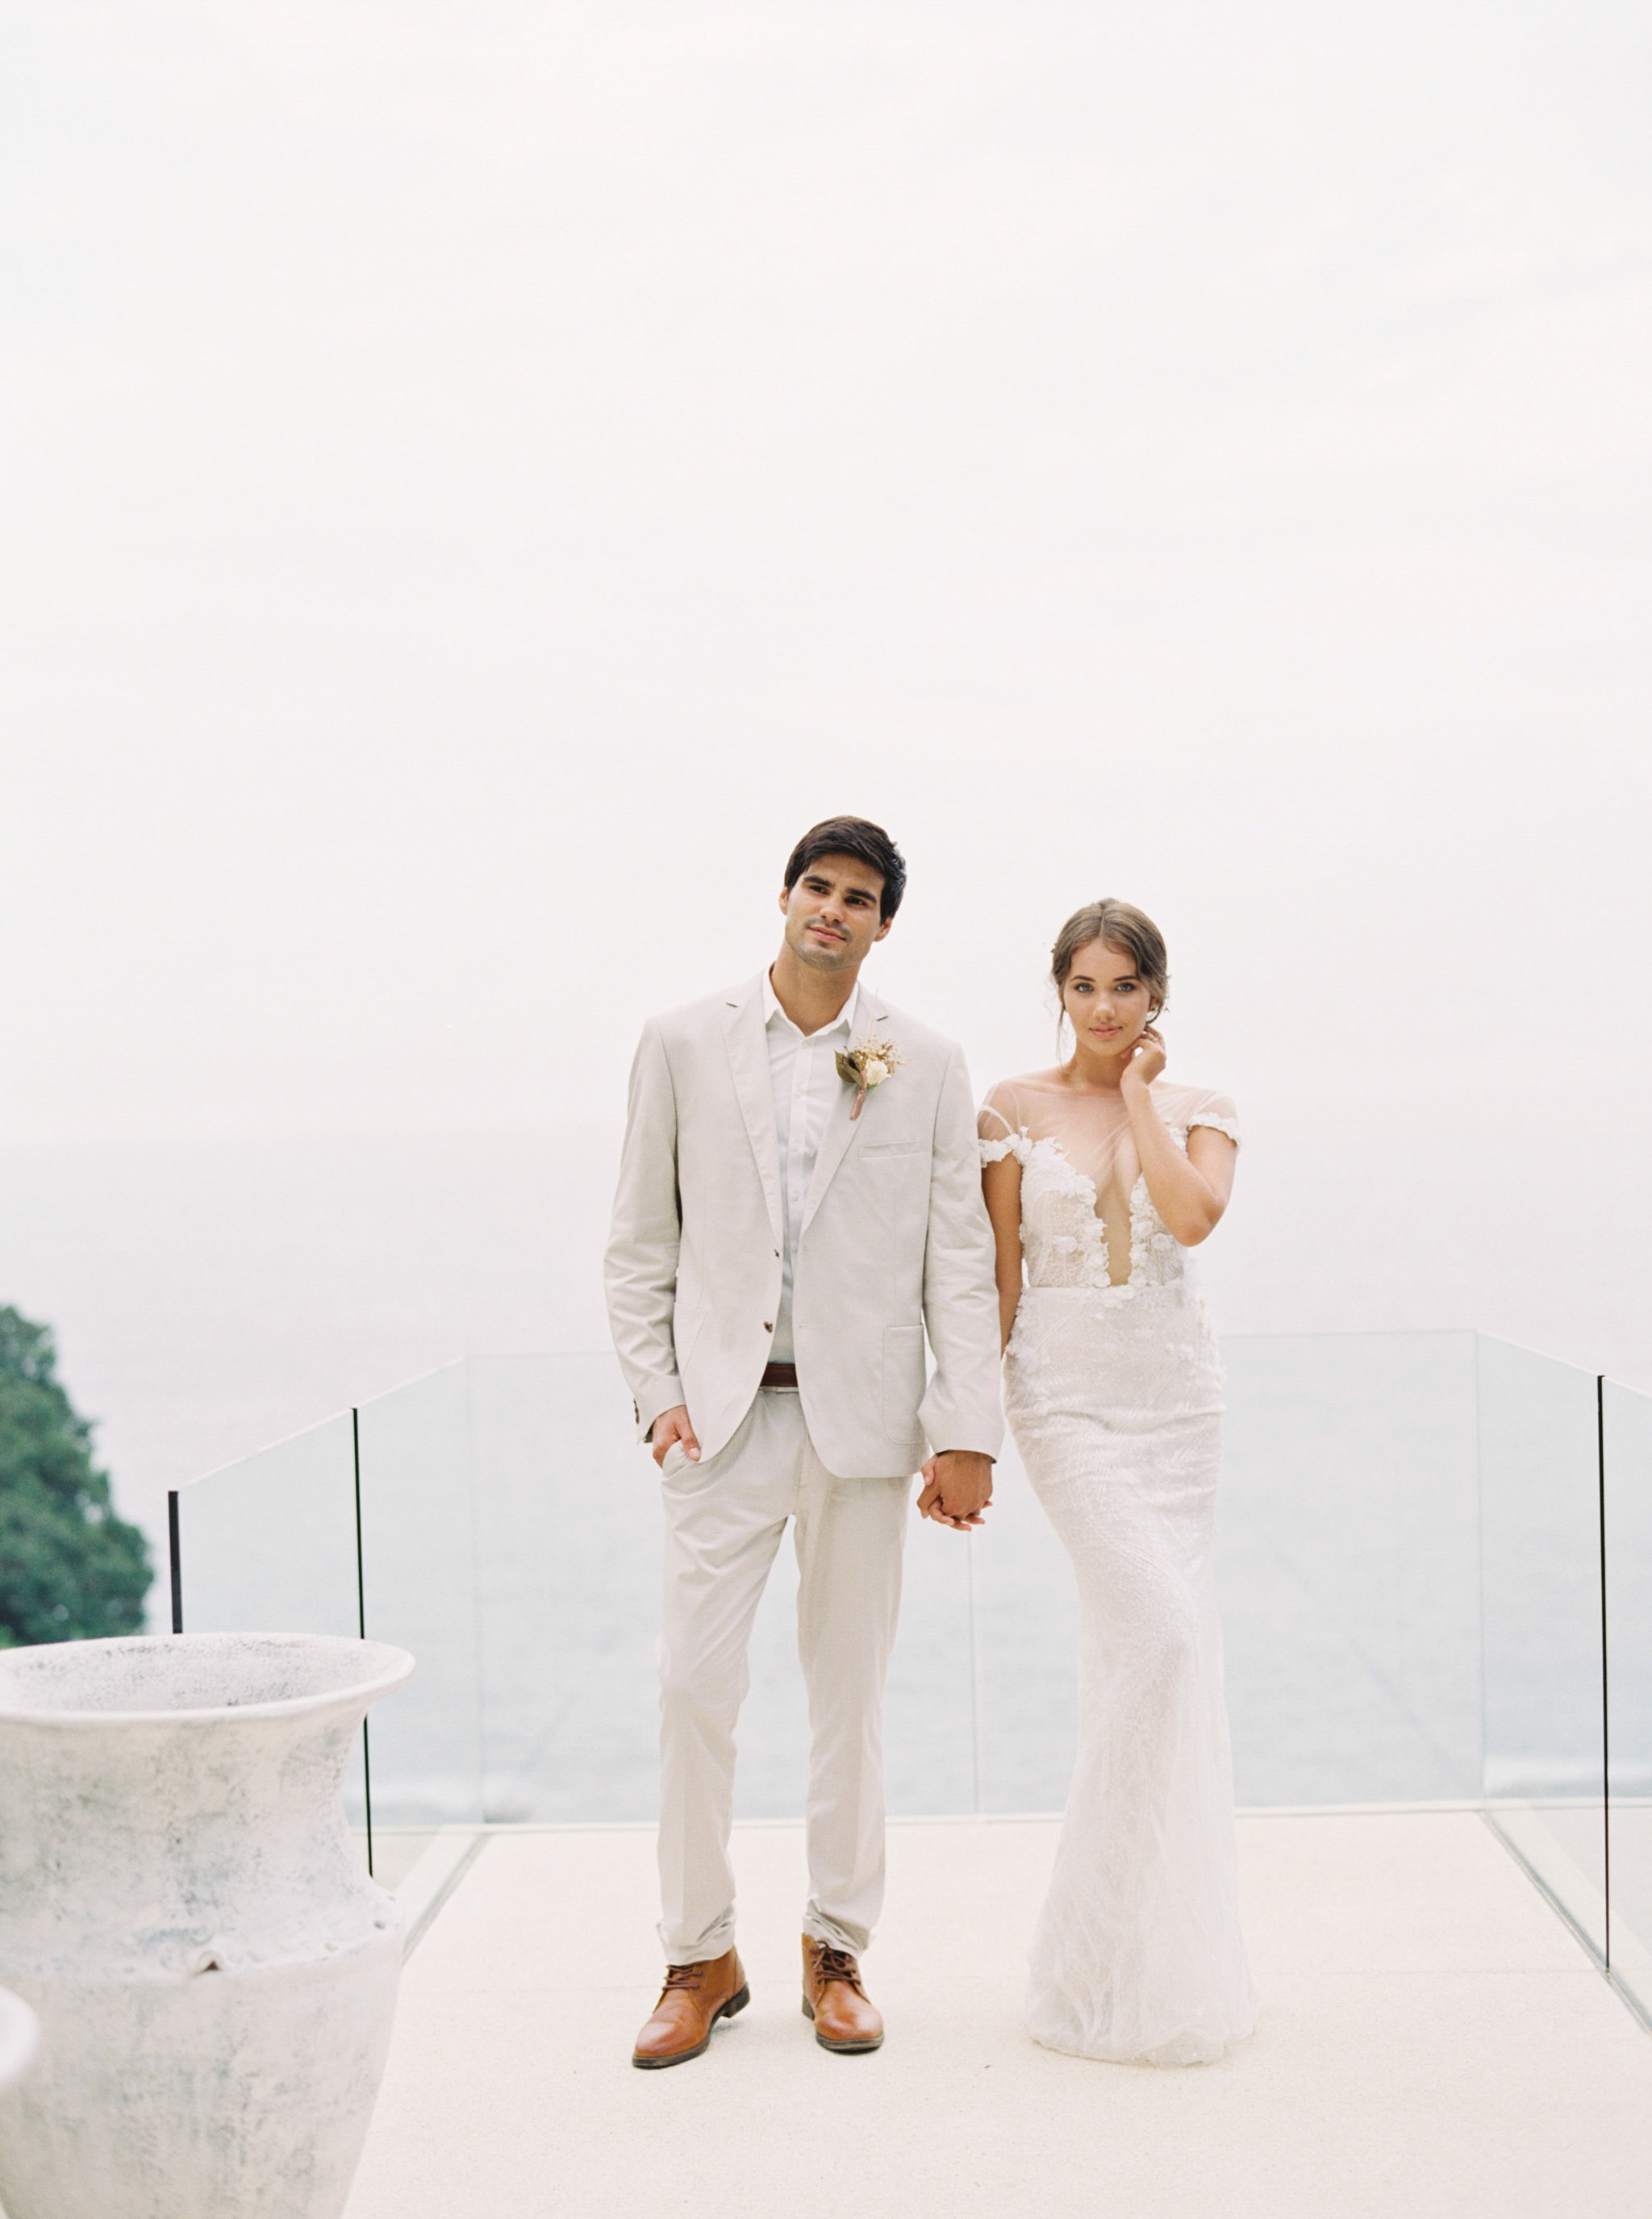 Destination Wedding at The Aquila Luxury Villas in Phuket Thailand Fine Art Film Wedding Photographer Sheri McMahon-00071-71.jpg